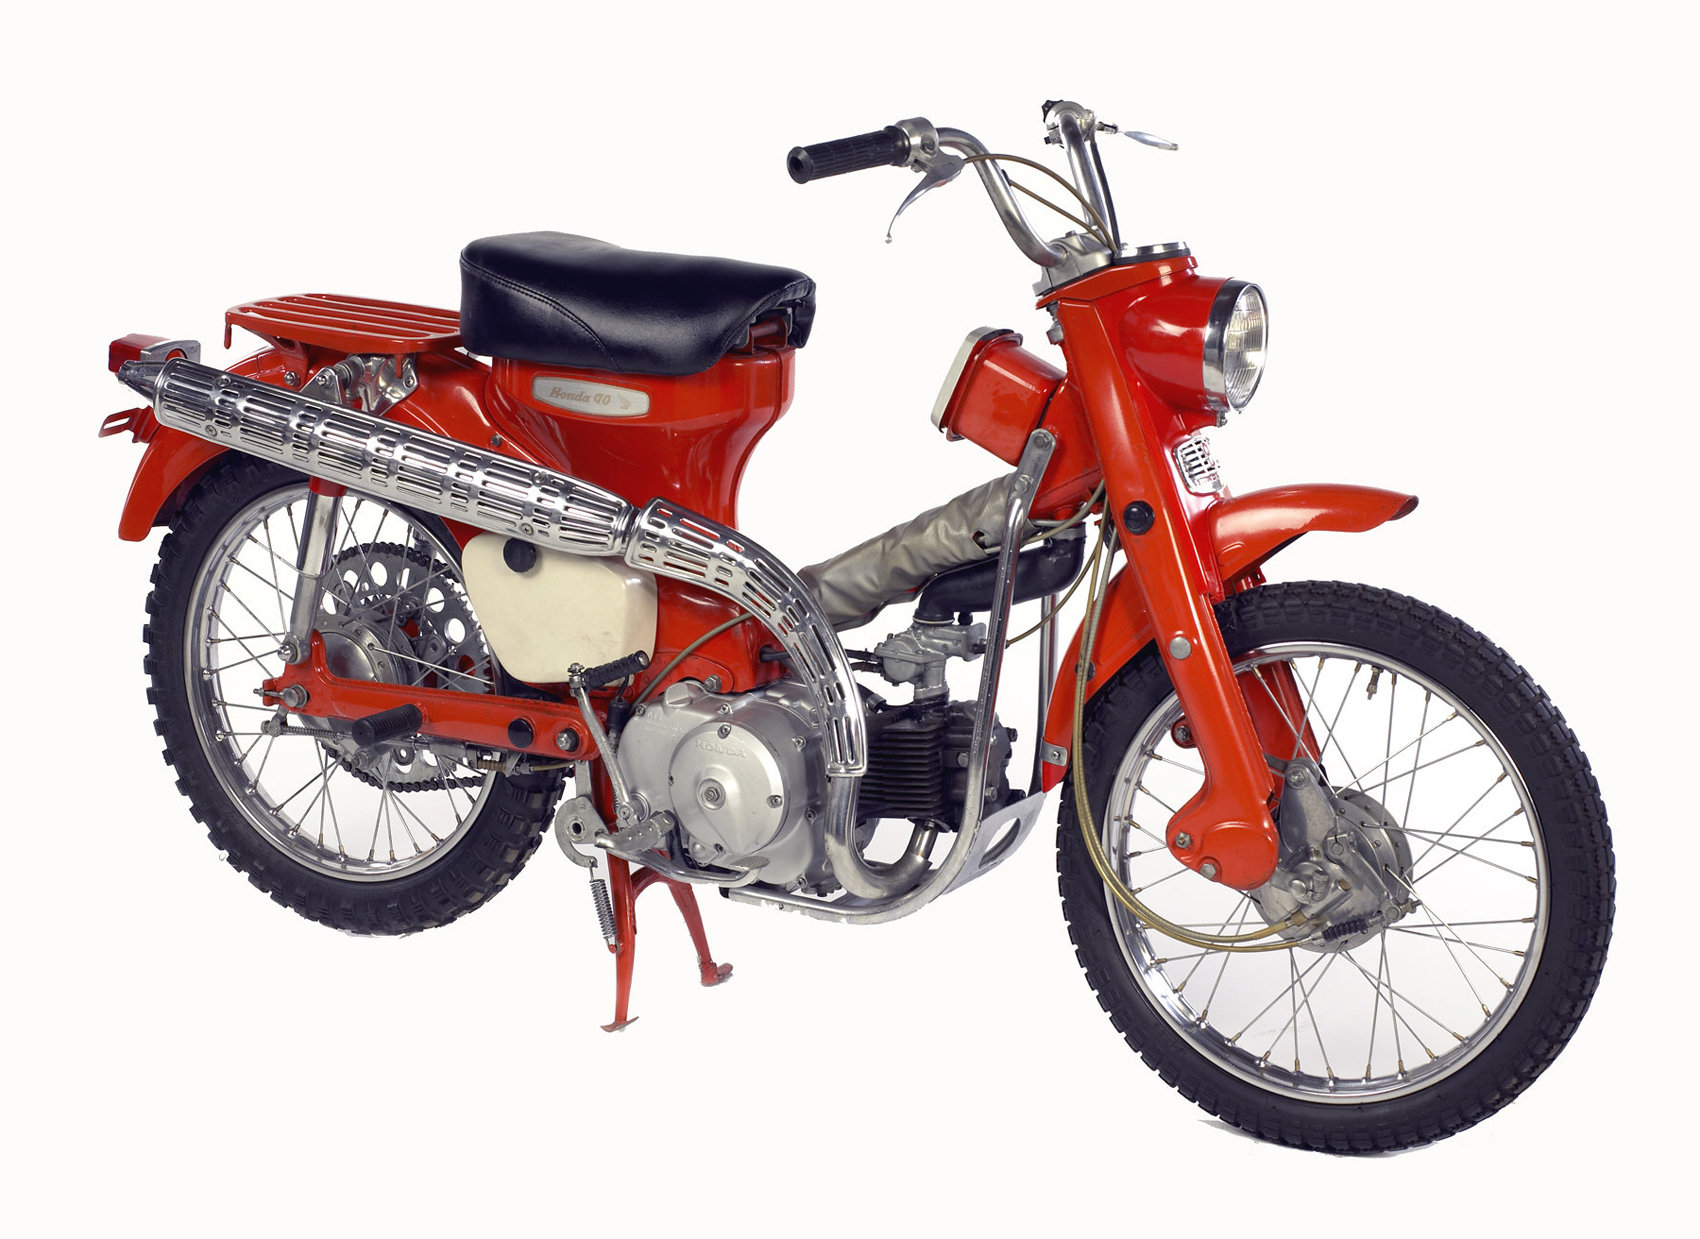 Honda 90 Trail CT200